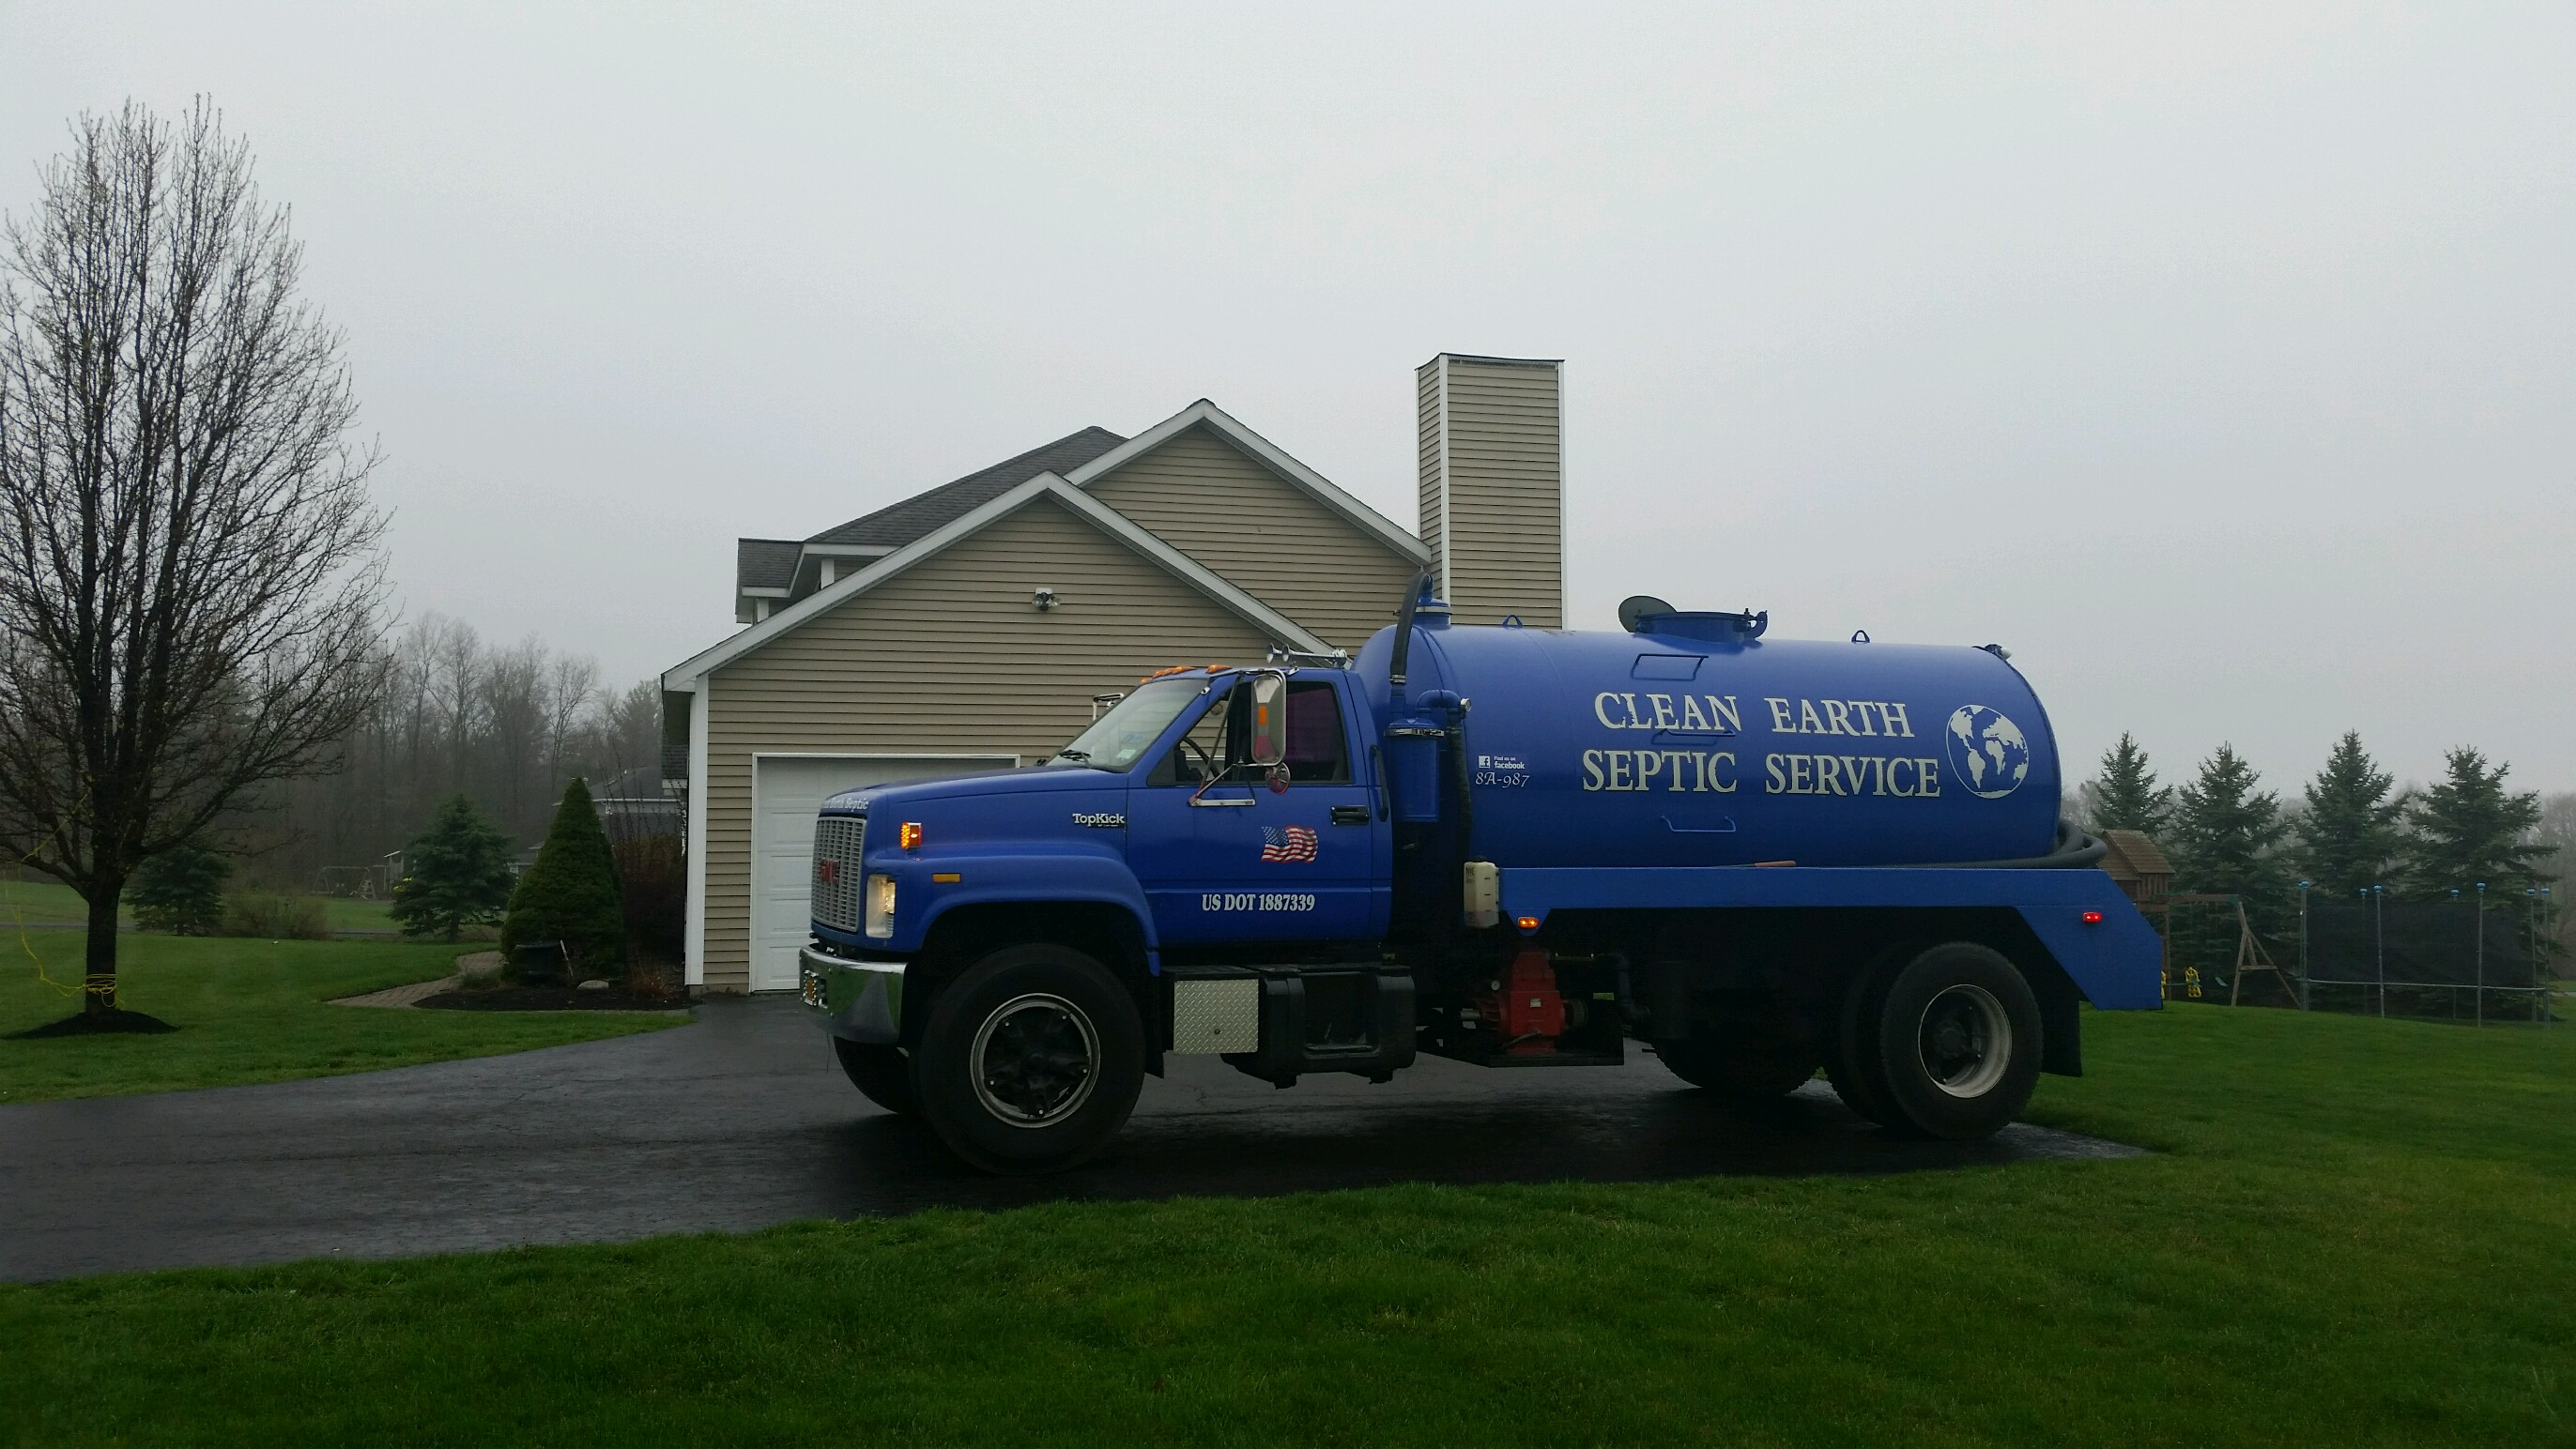 Clean Earth Septic Service LLC image 0